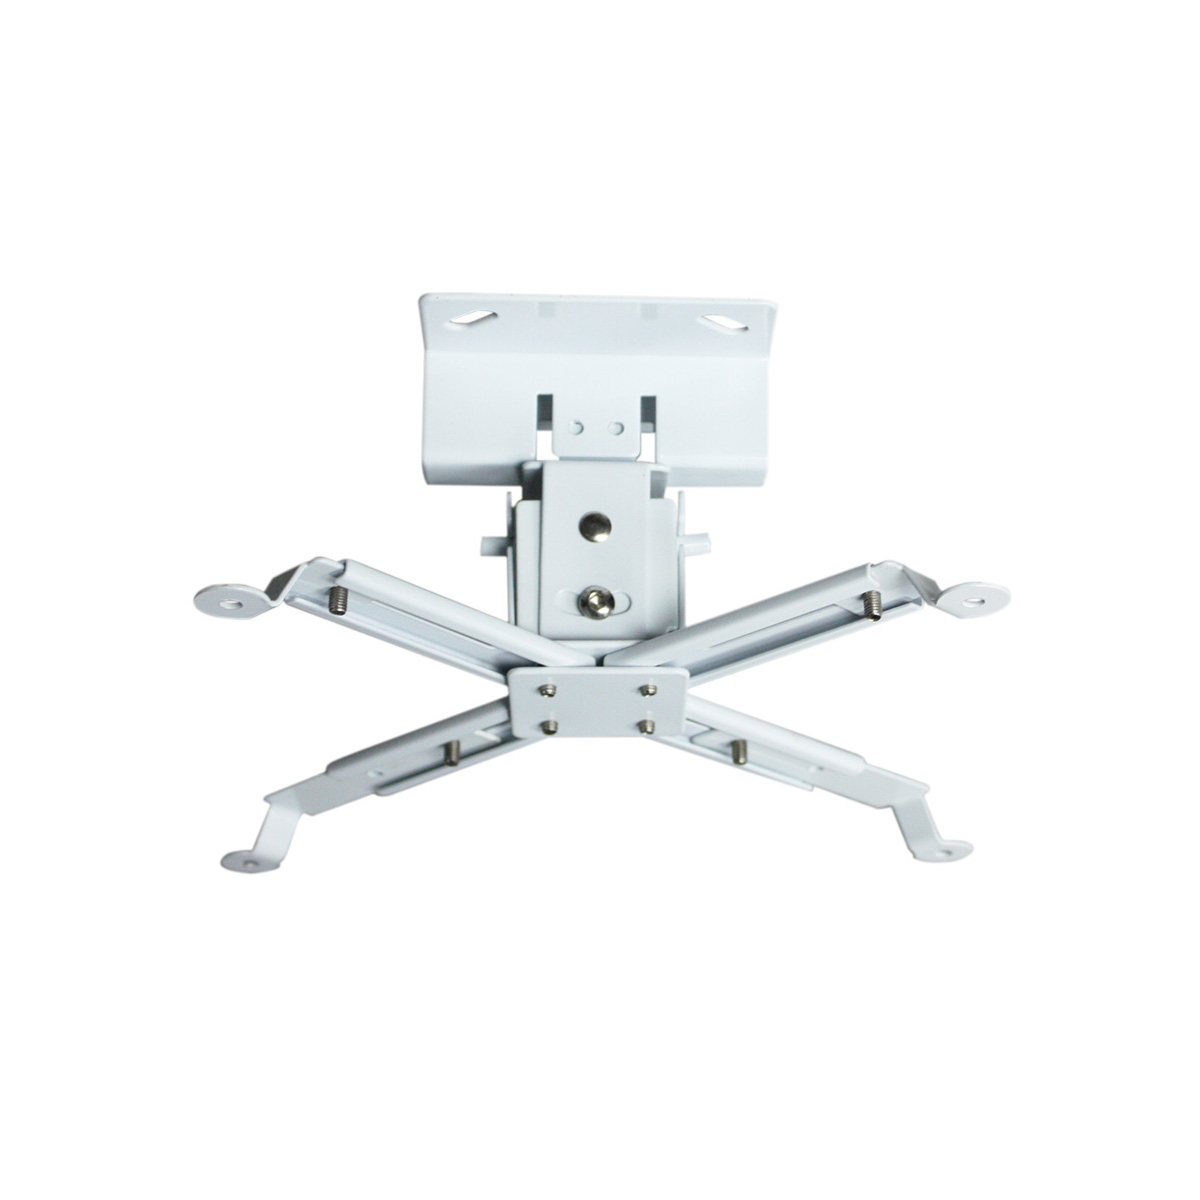 monitor smart vesa light downloads mount incl ceiling series bracket metre selector